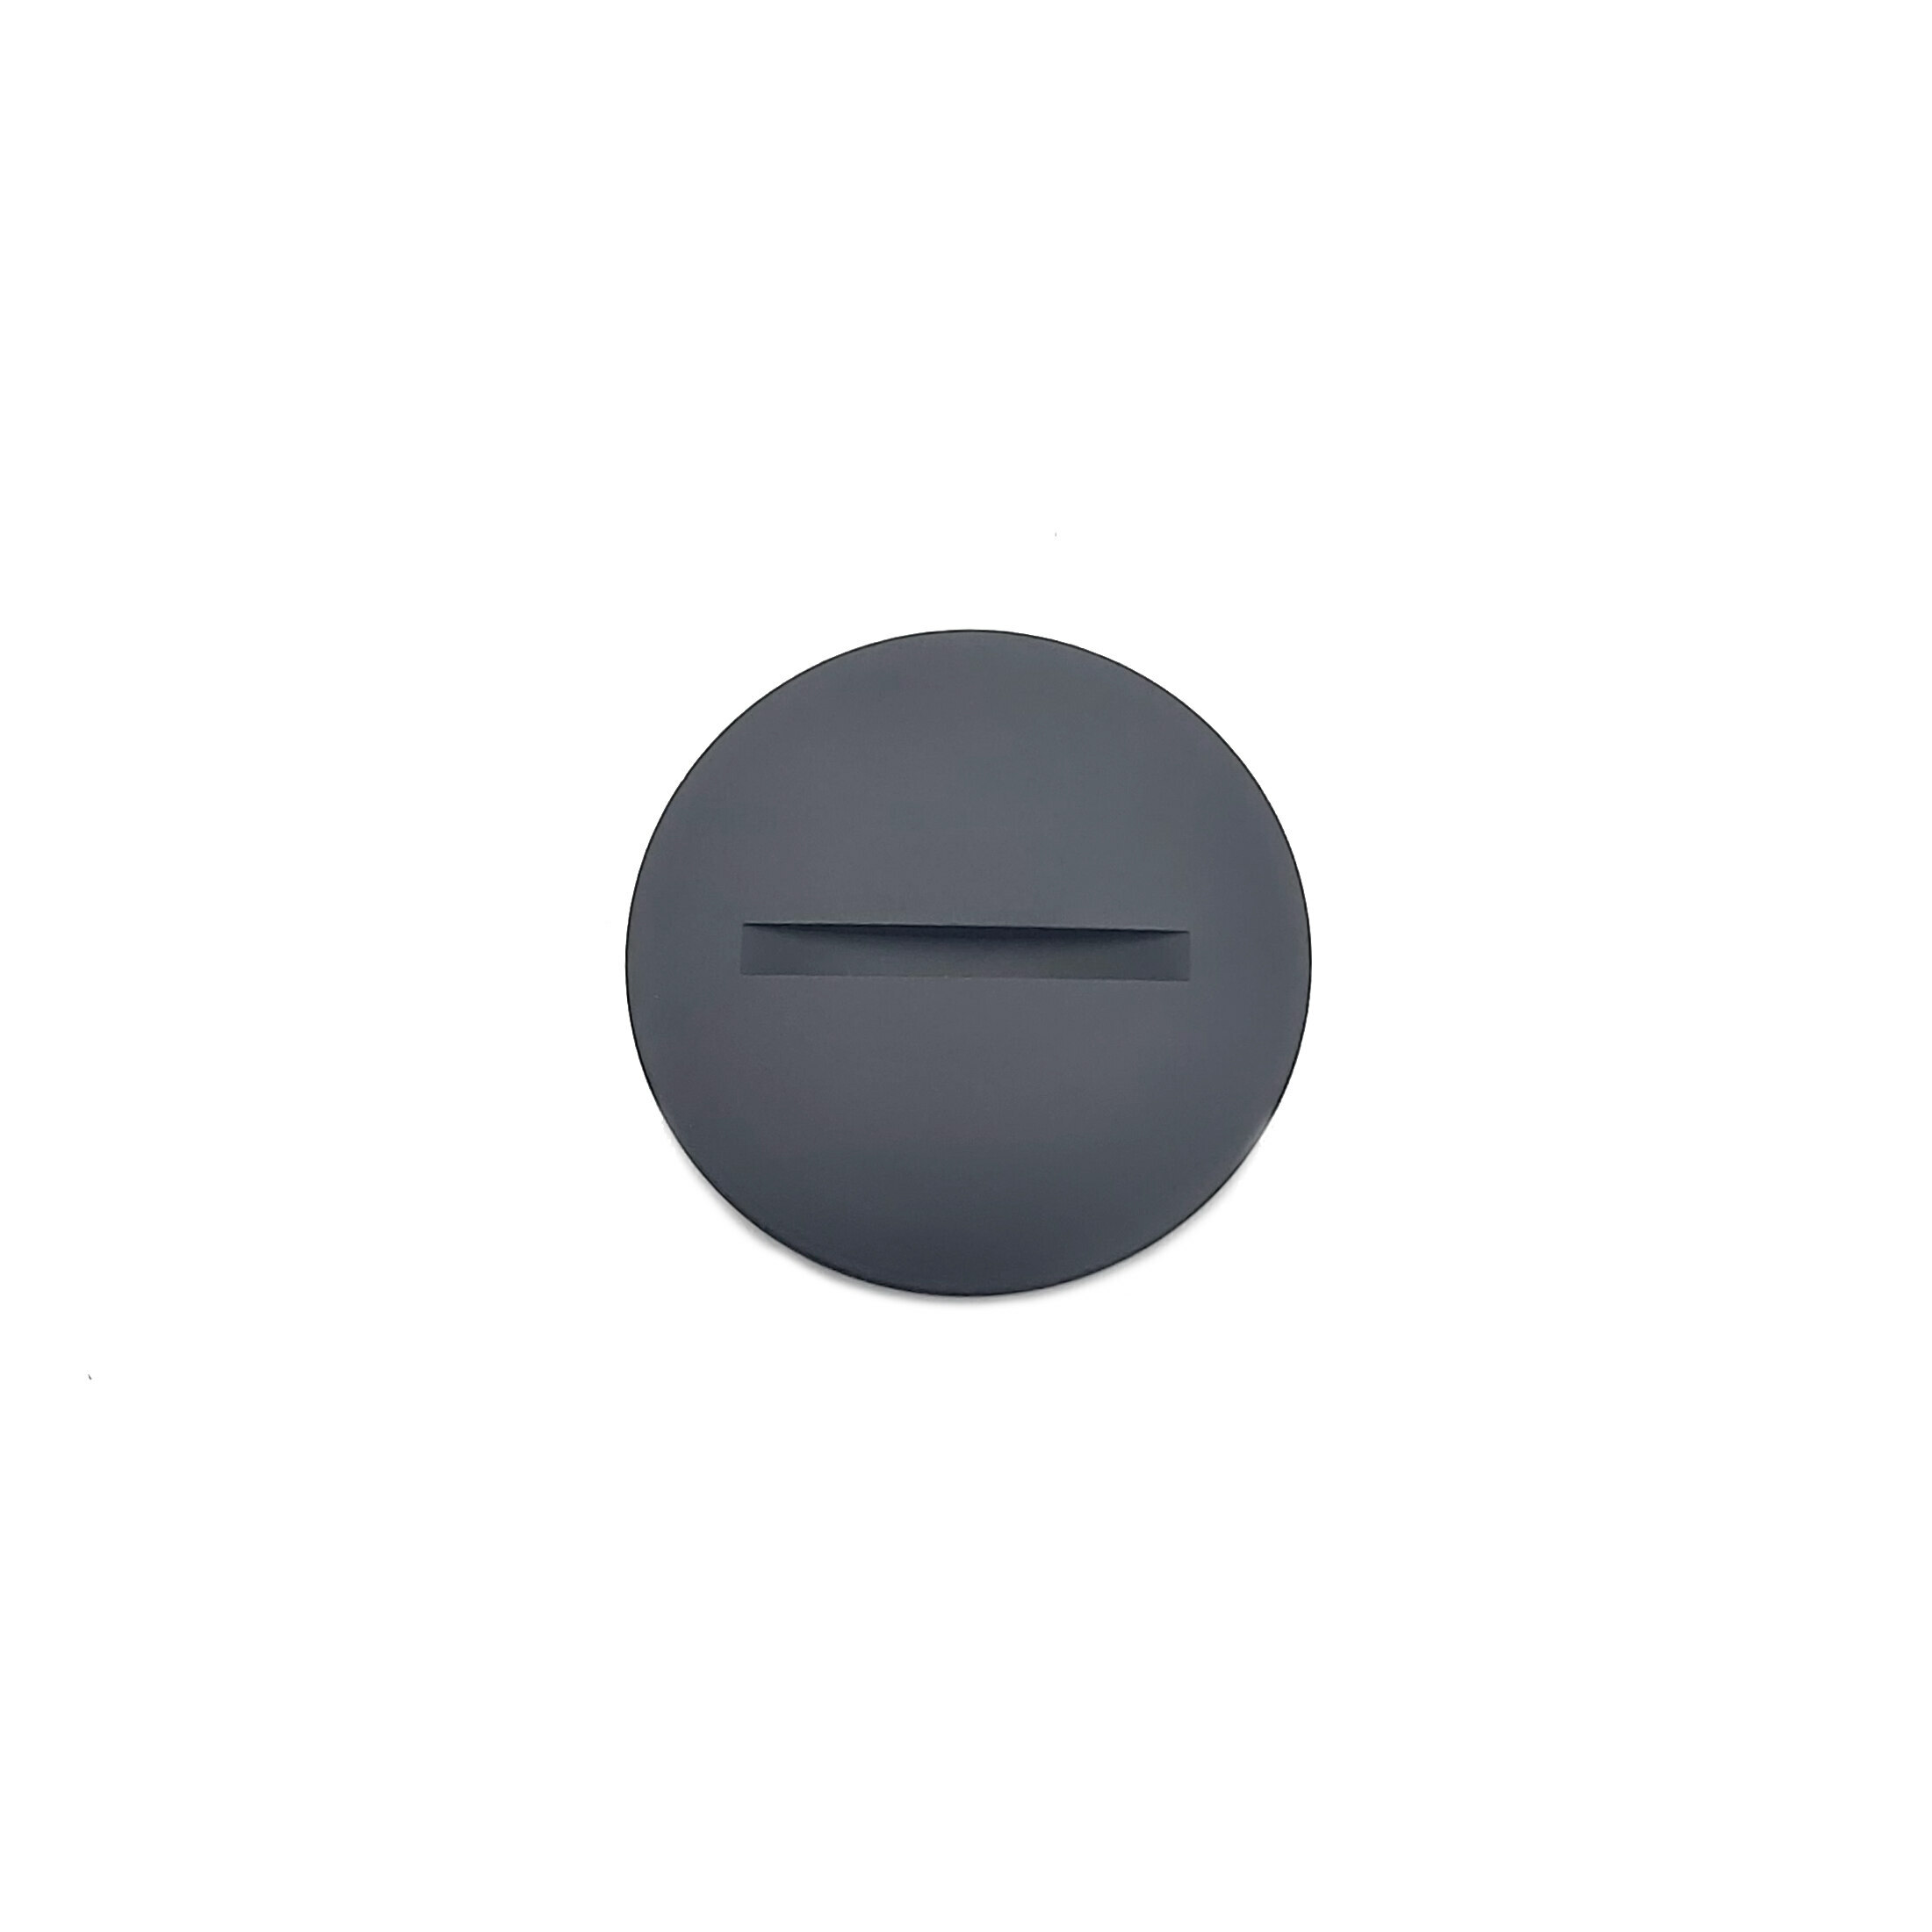 Holosun accessory CLASSIC HS-BATTERY-TRAY-403R-503R